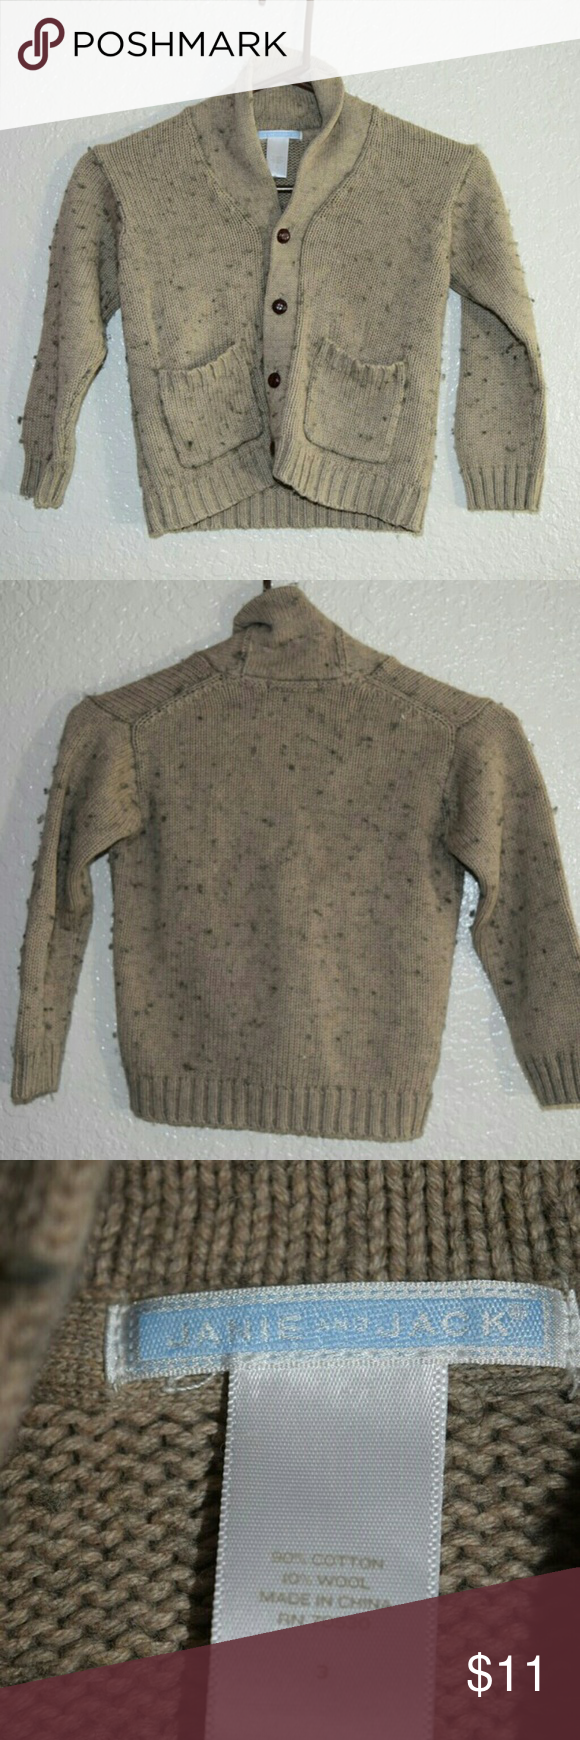 Janie and Jack Button Sweater Size 3 90% Cotton Janie and